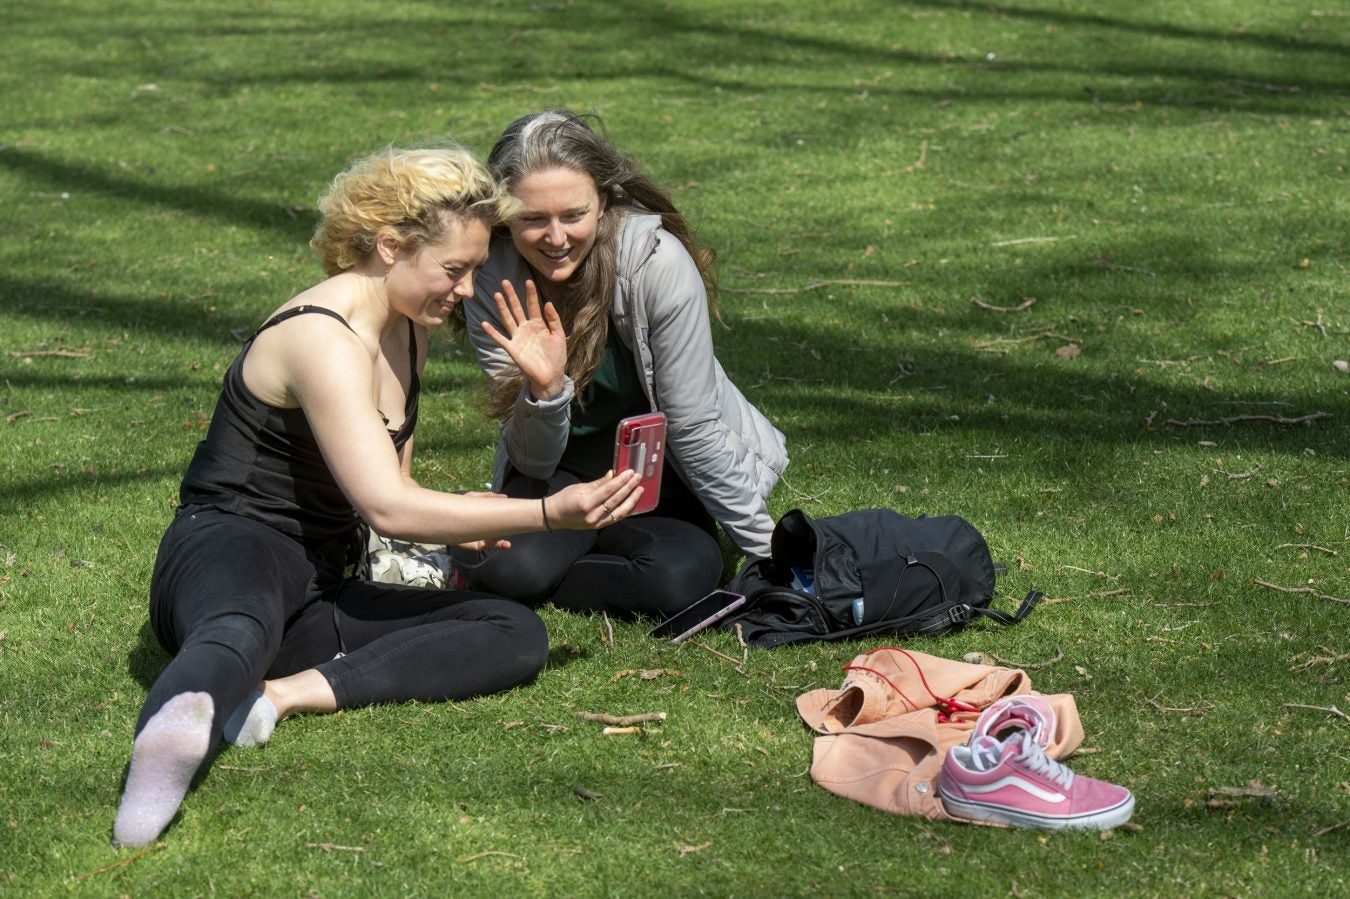 Grace Birch and Whitney McFadden FaceTime with a friend while relaxing on the HKS lawn adjacent to Memorial Drive.